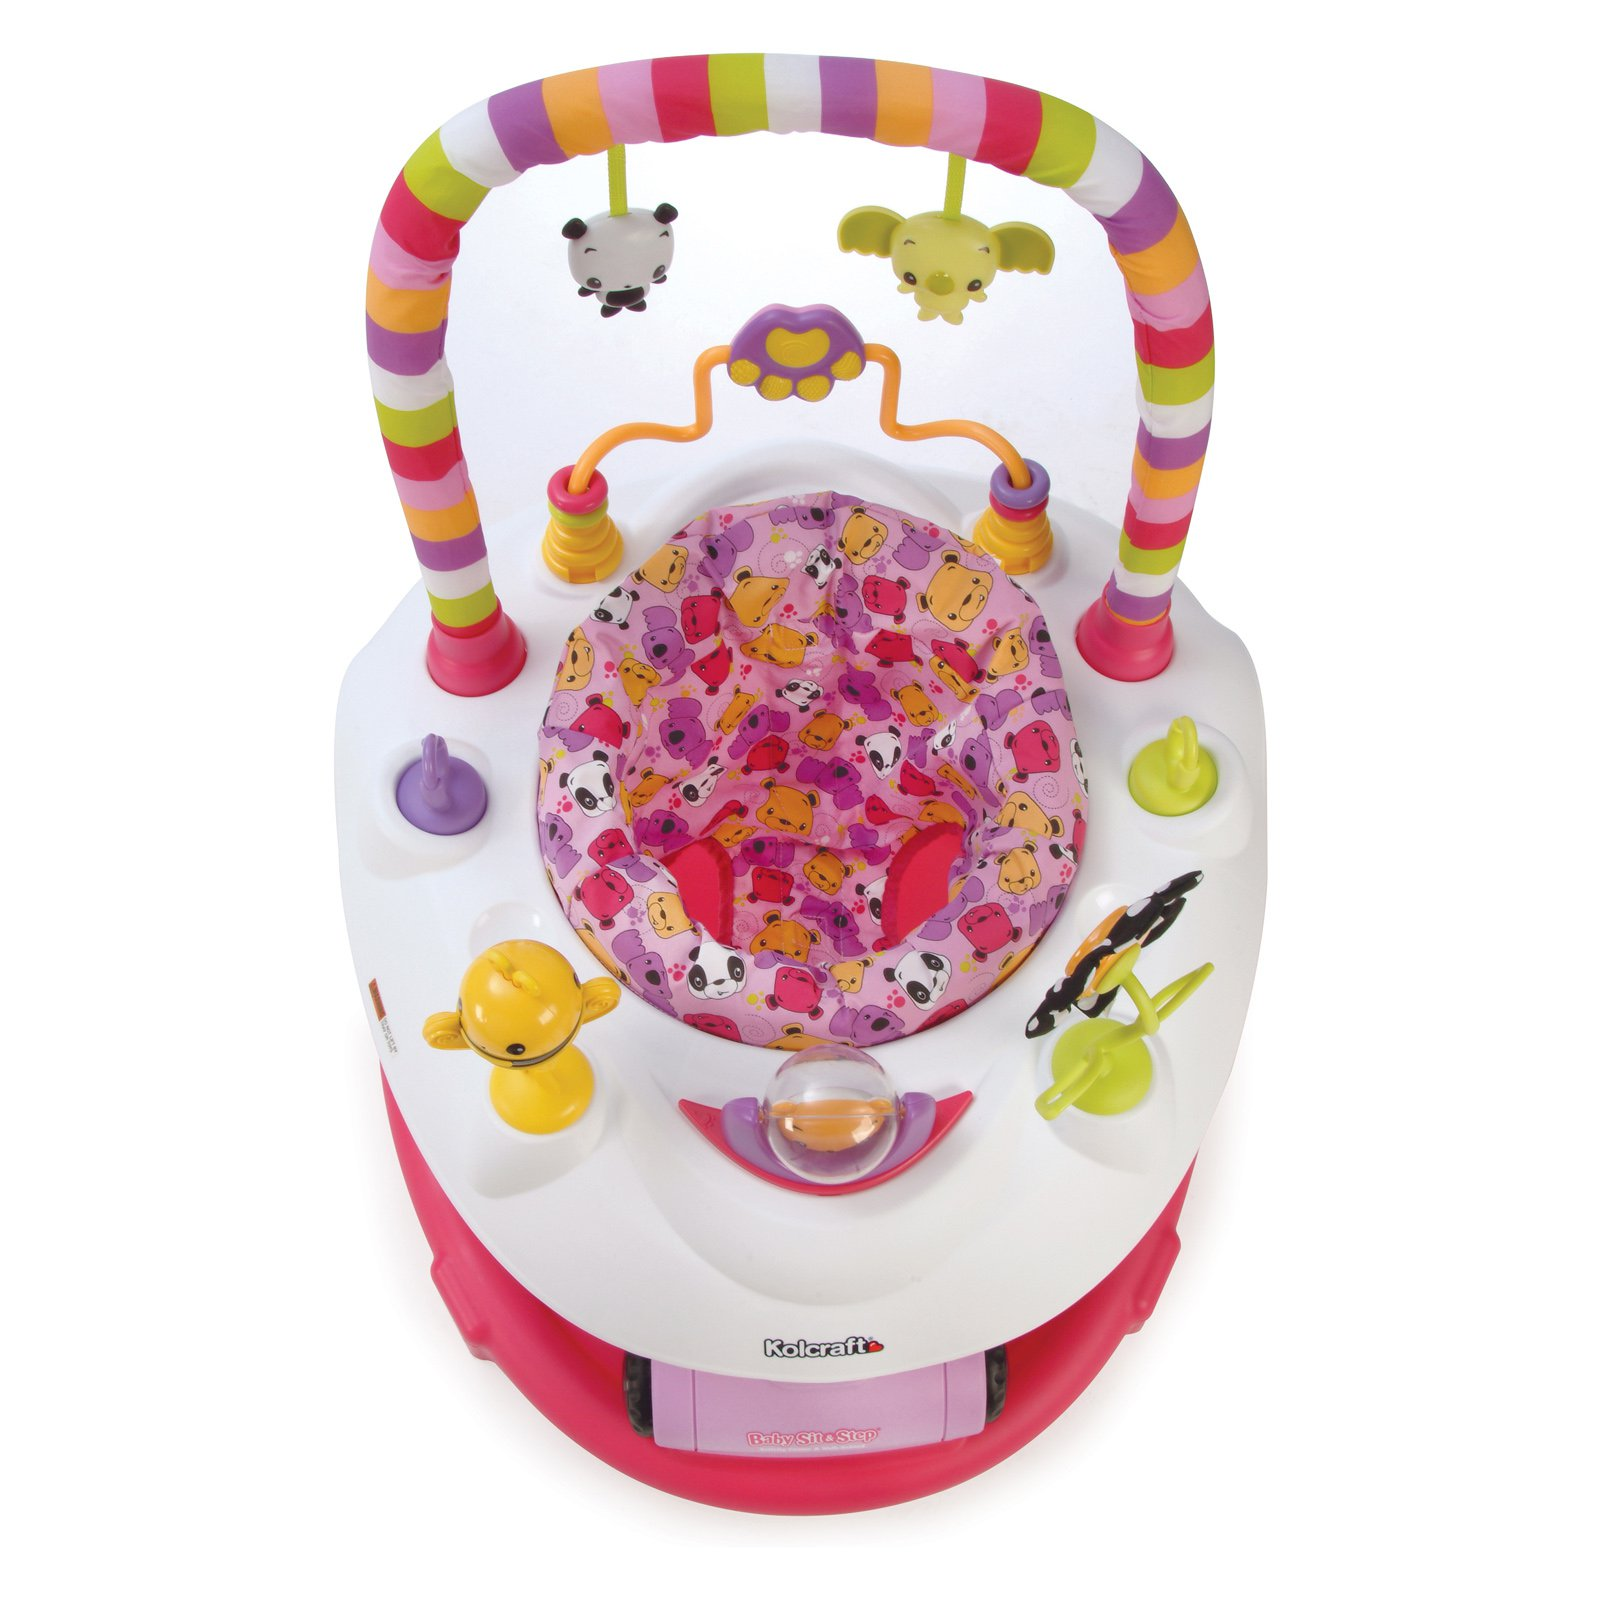 Kolcraft Baby Sit & Step 2-in-1 Activity Center, Pink Bear Hugs